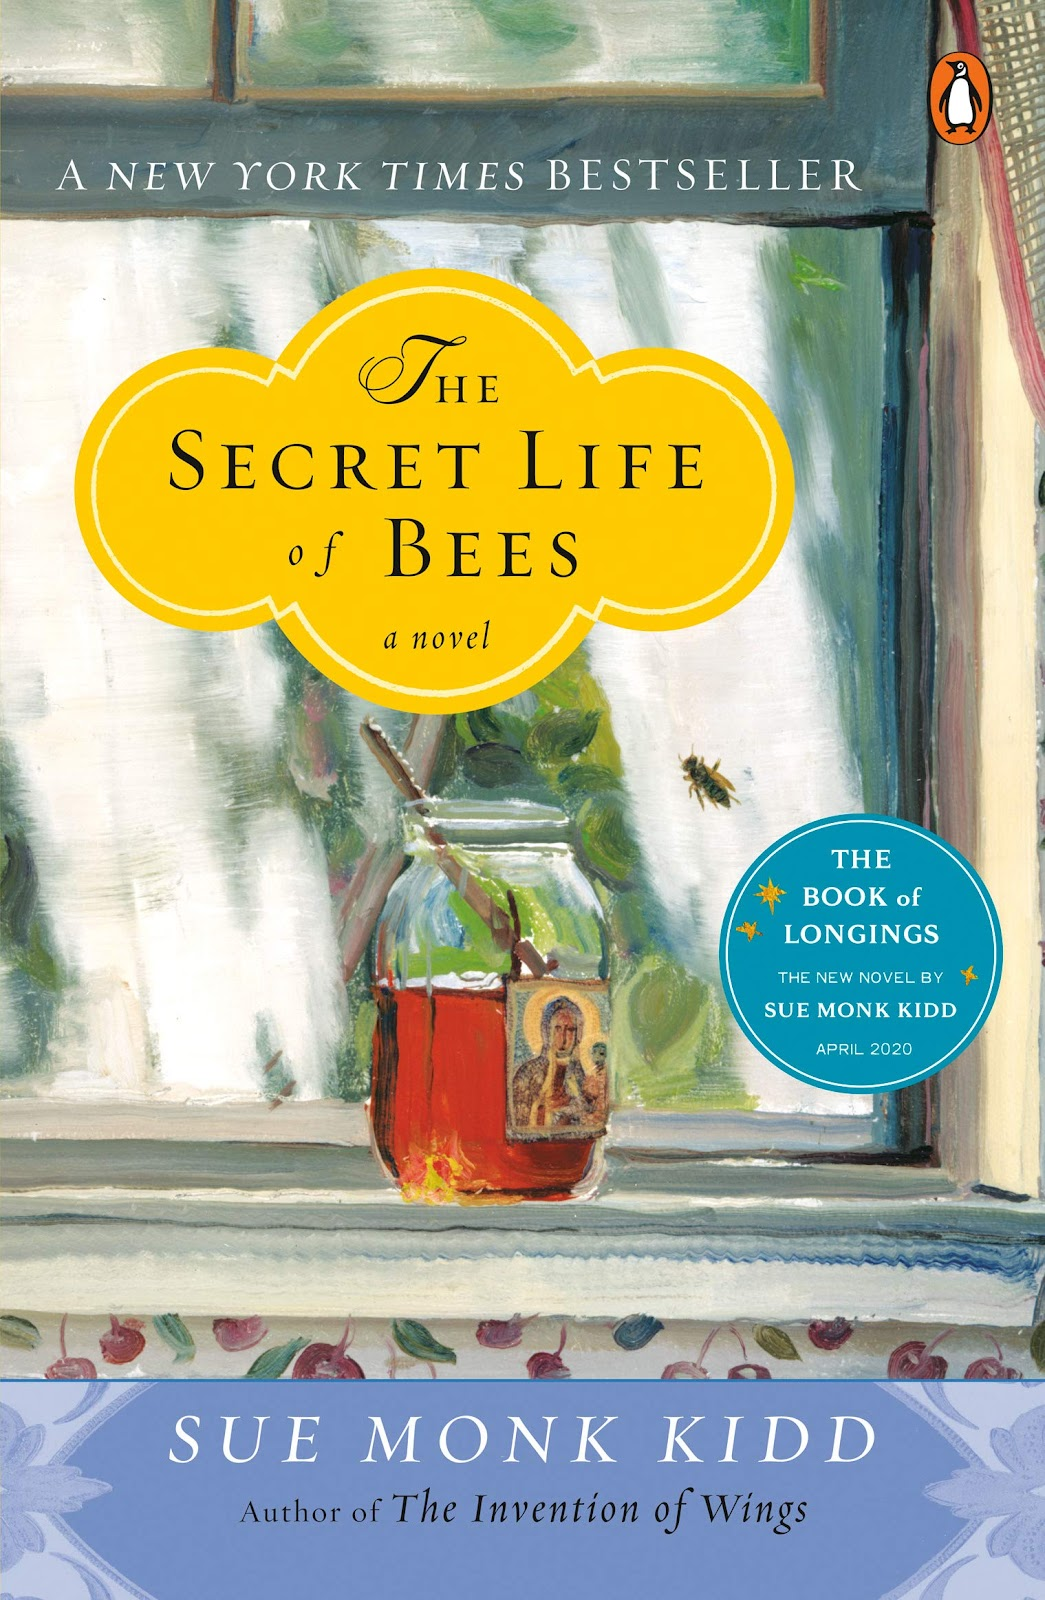 Image result for the secret life of bees book cover